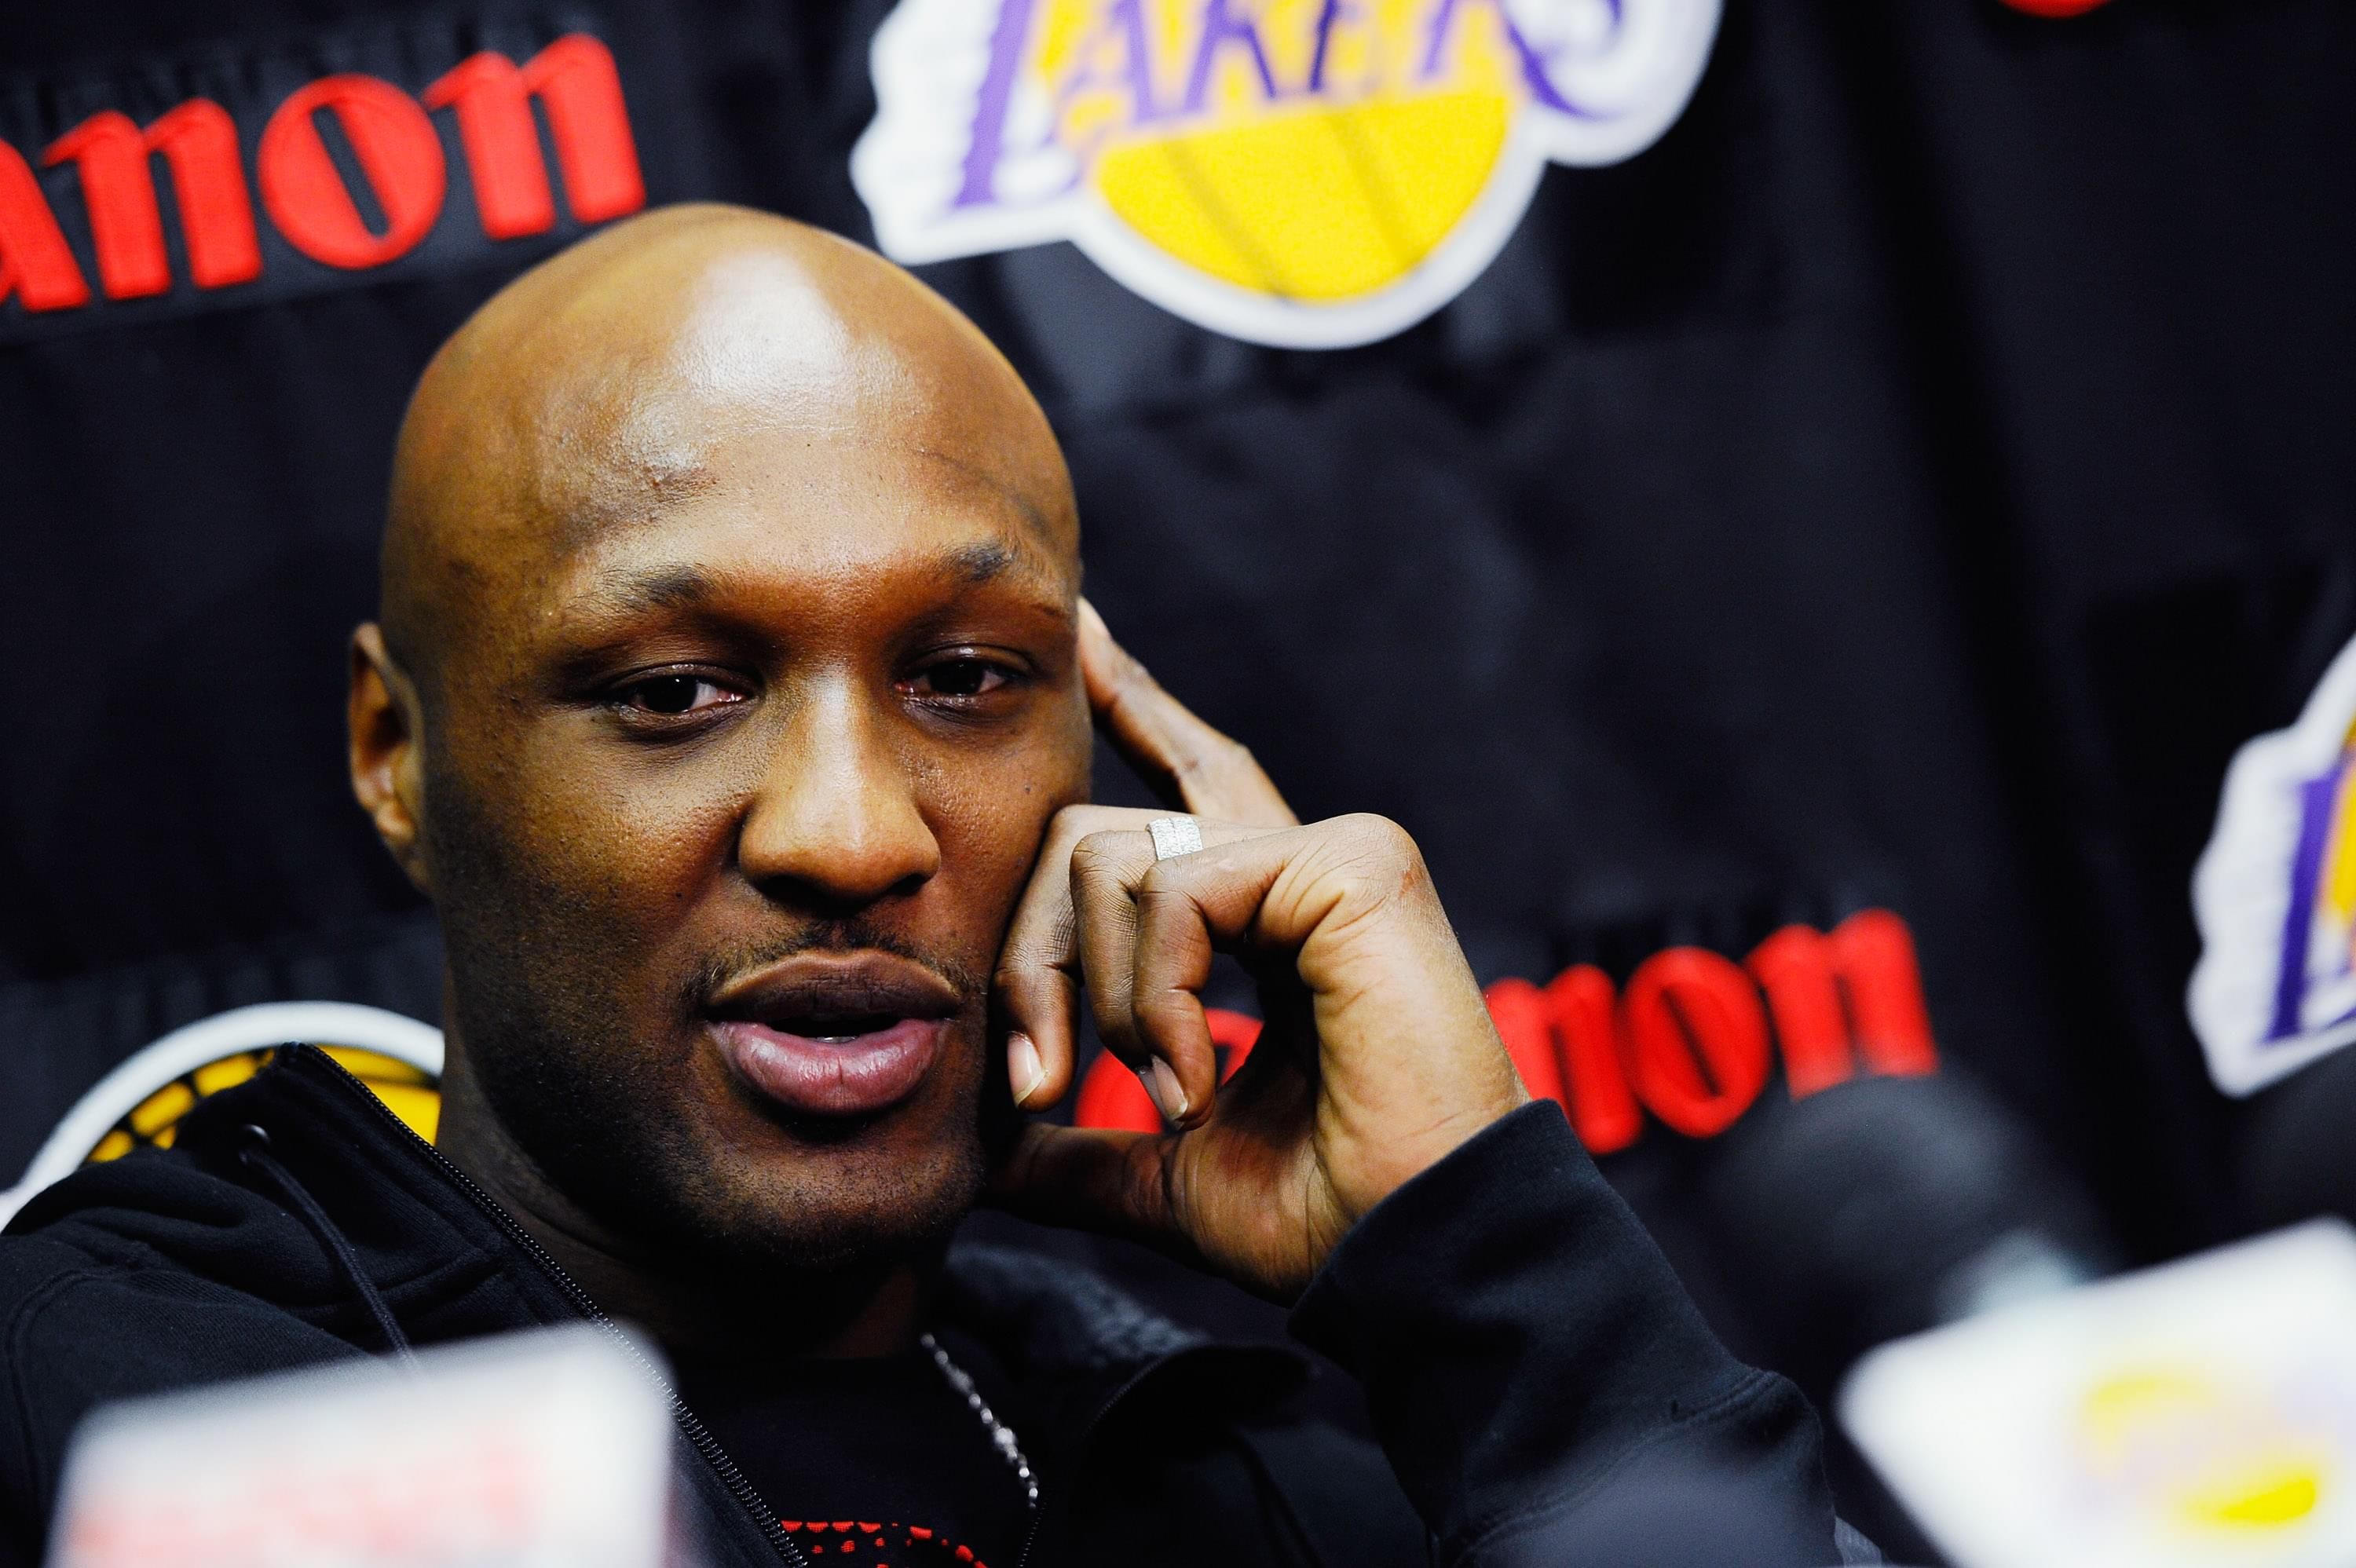 Lamar Odom Announces He'll Play Basketball in China